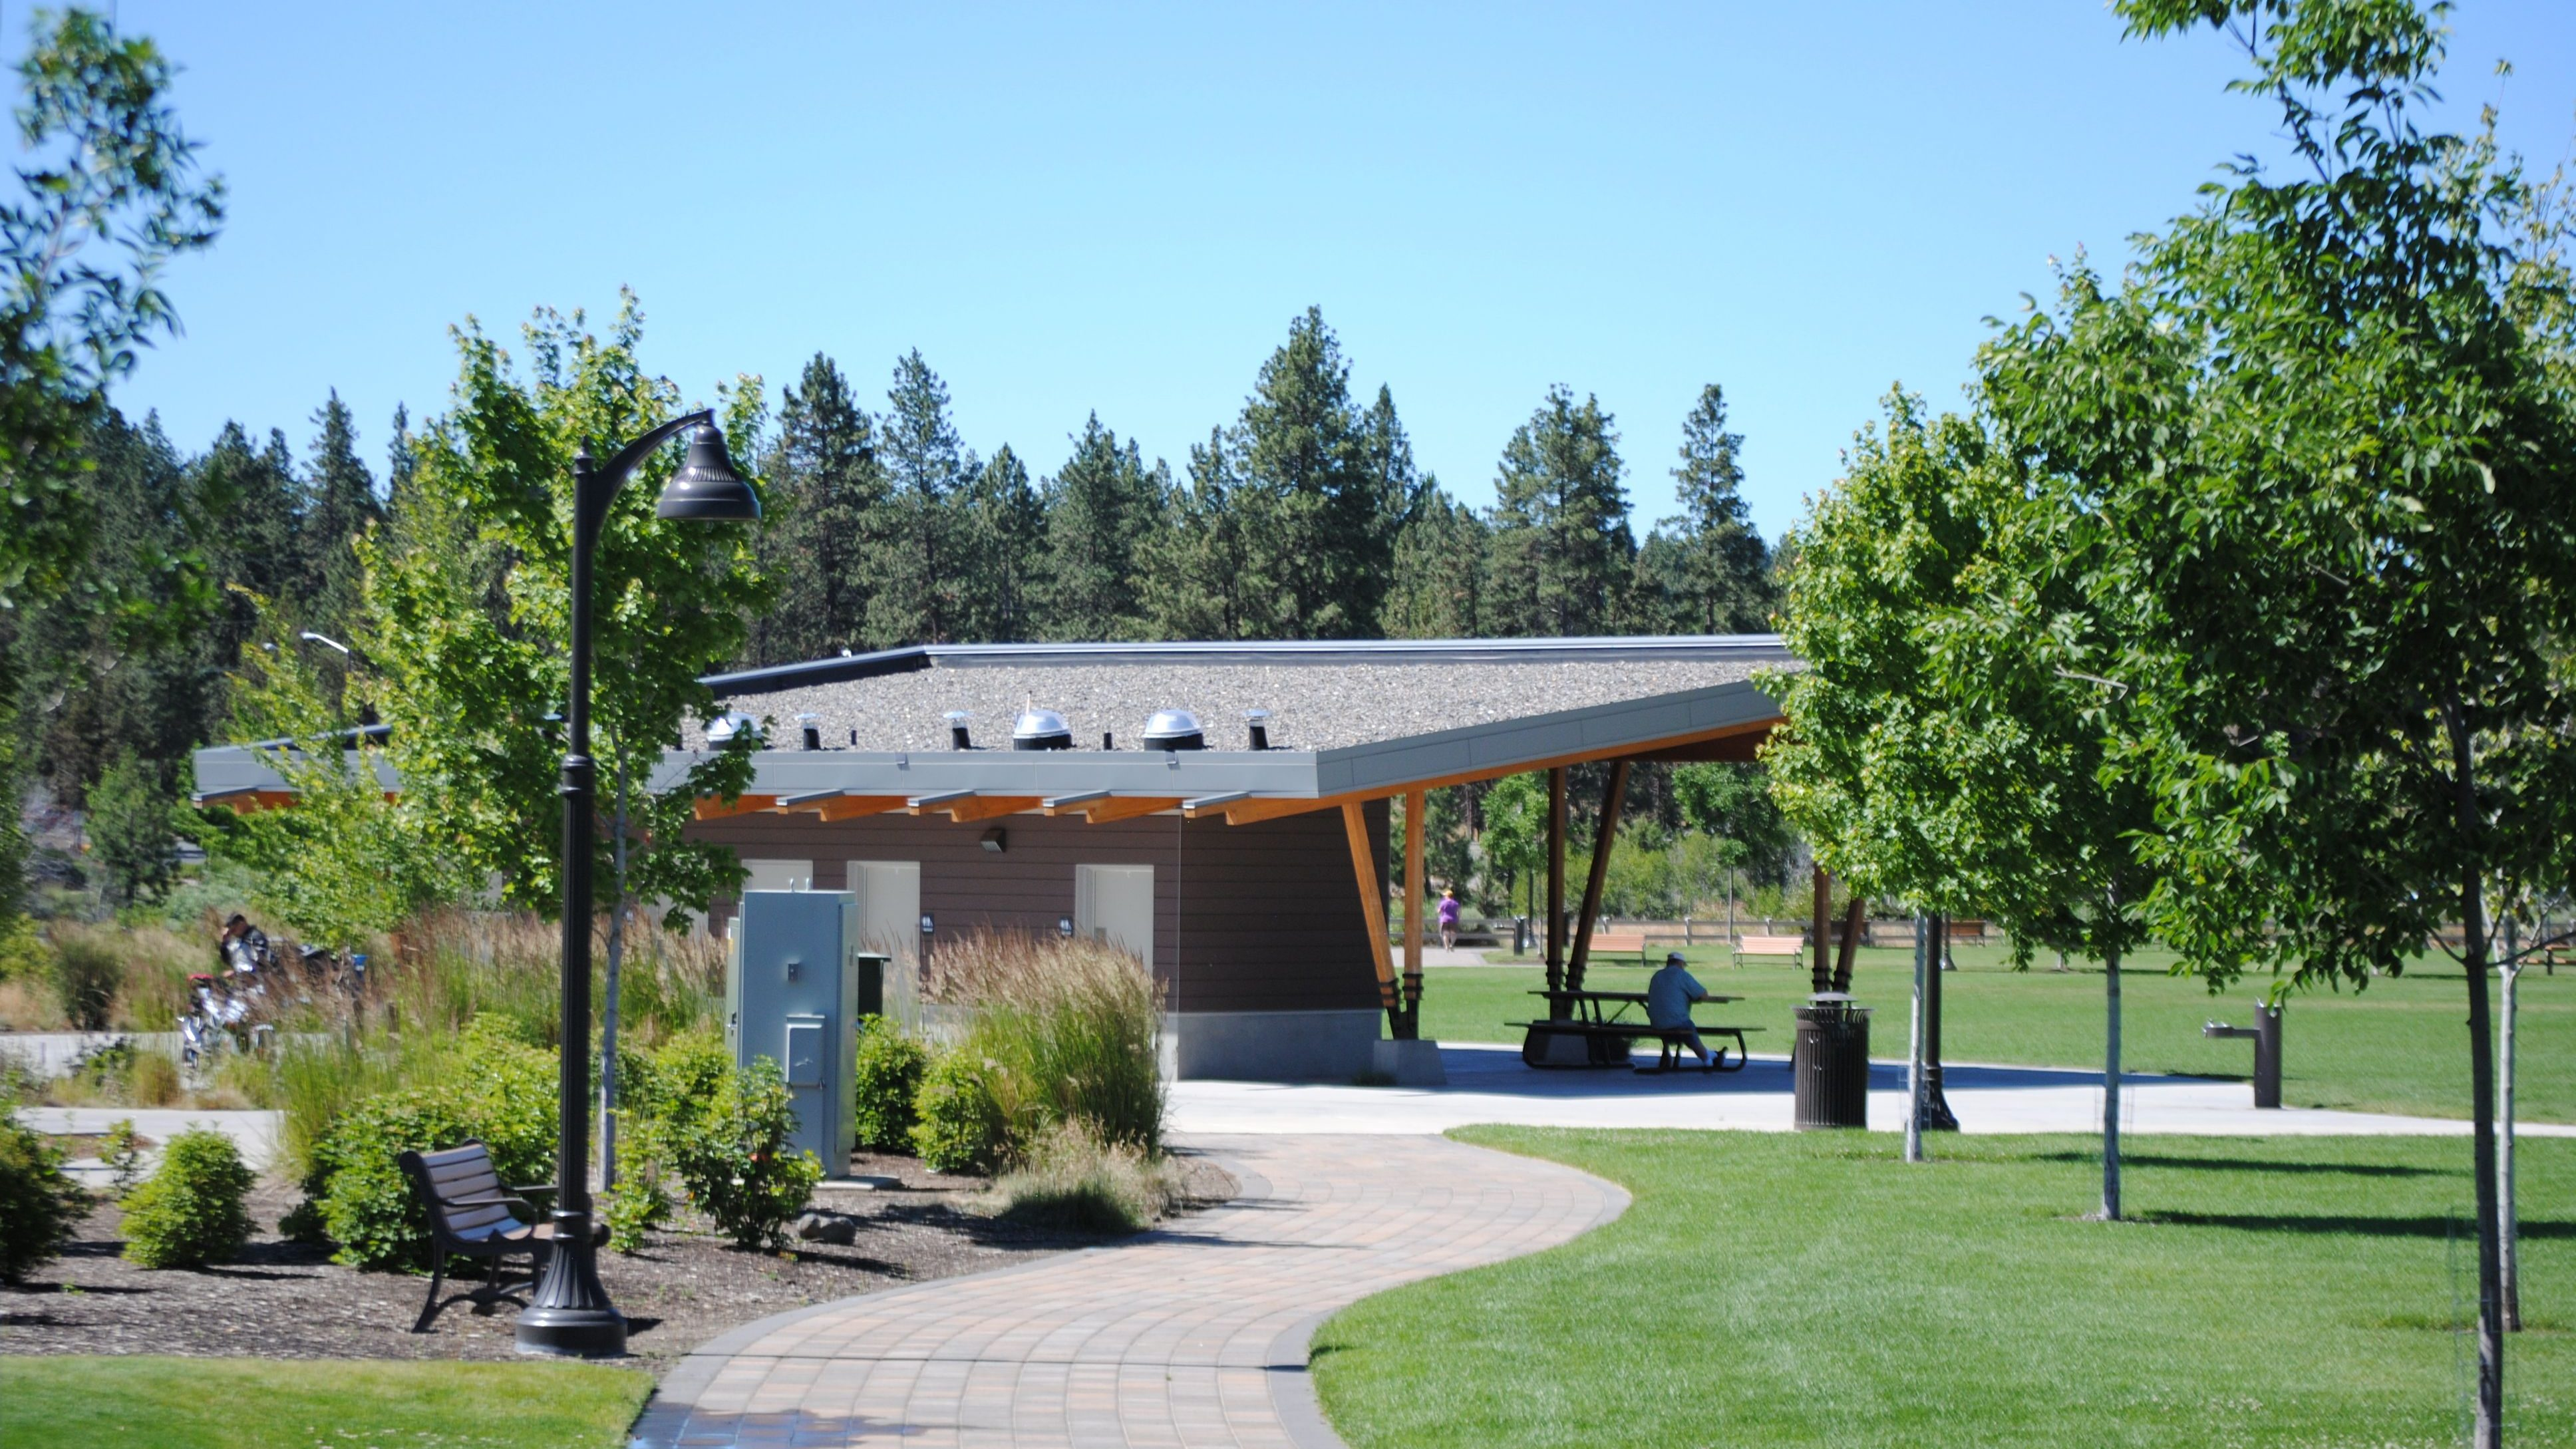 Image of the Riverbend Park Picnic Shelter